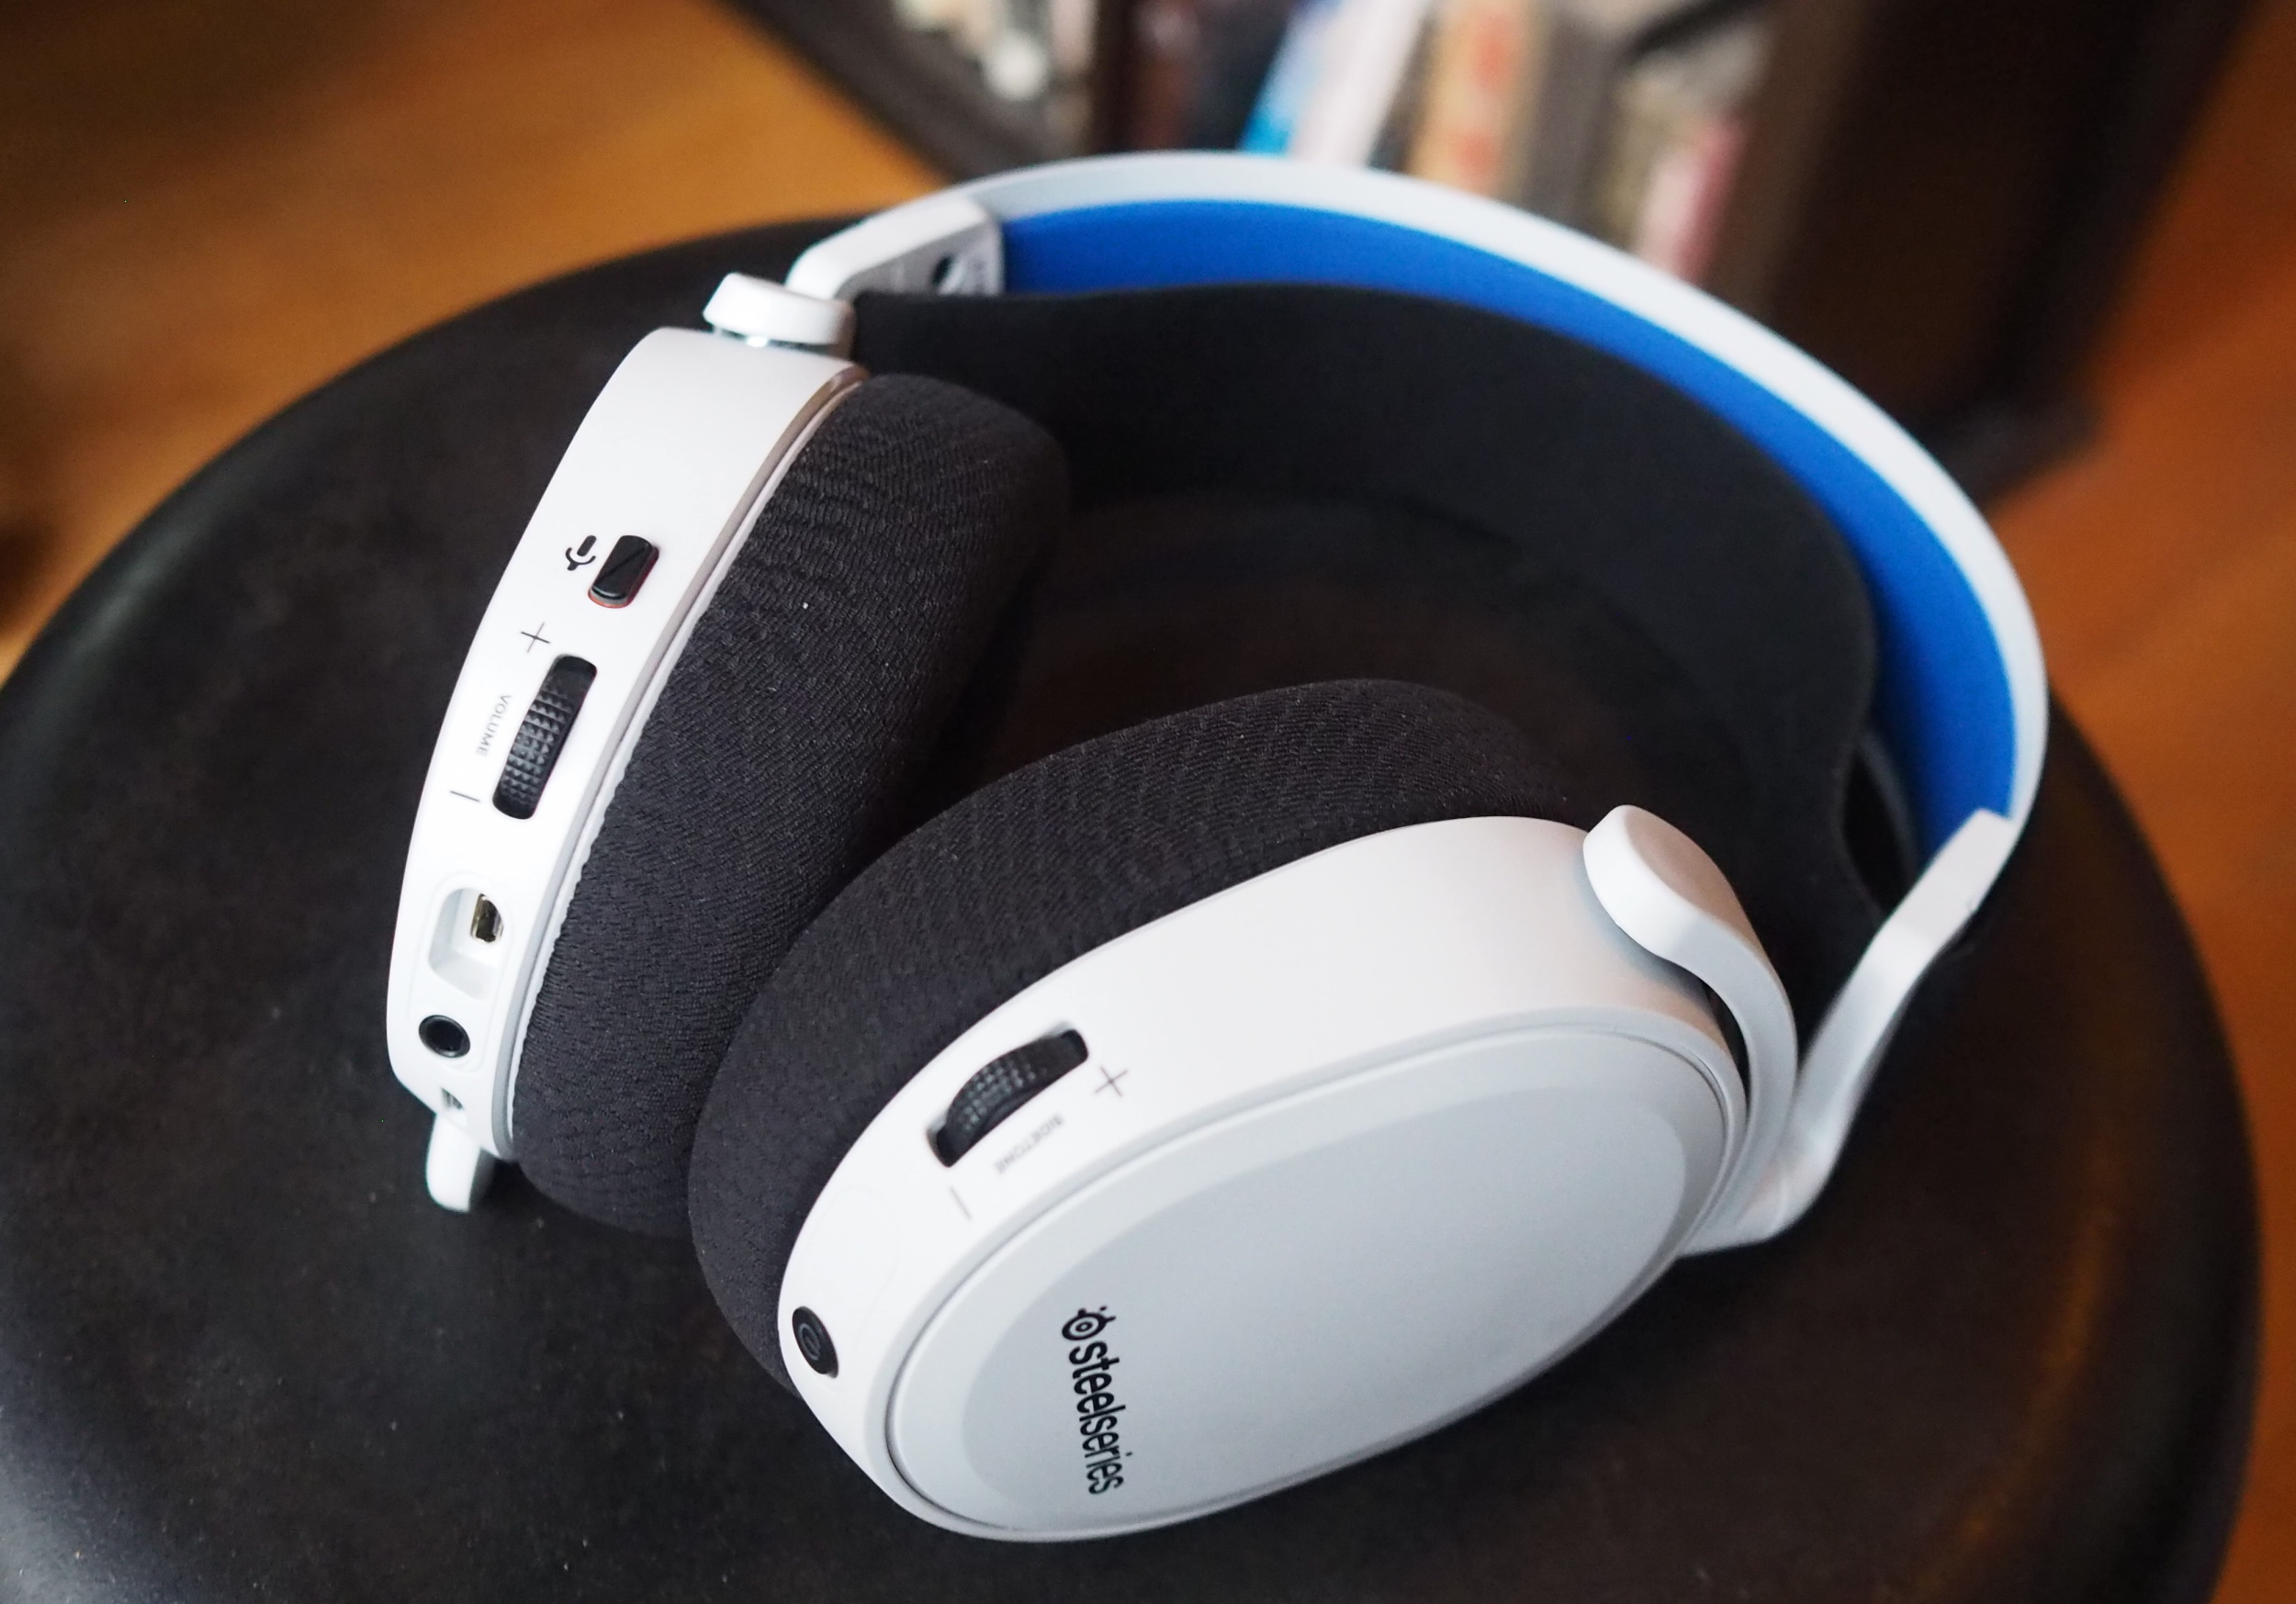 Review: Wireless headsets from Logitech, Audio-Technica, SteelSeries, HyperX and more